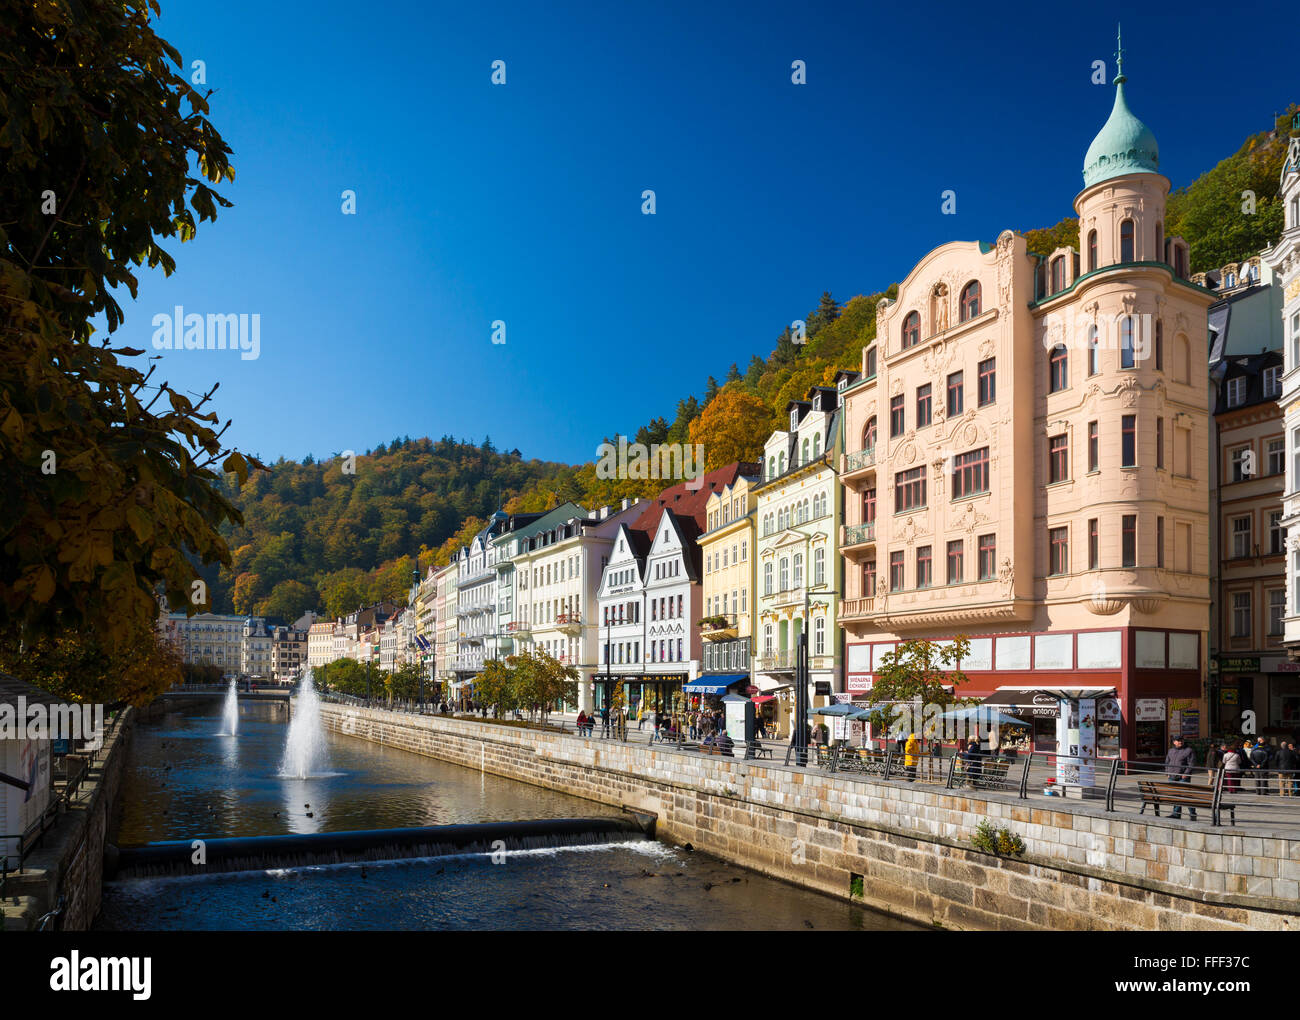 CARLSBAD, CZECH REPUBLIC - OCTOBER 10, 2015 - The historic city of Carlsbad is one of the most famous spa towns Stock Photo